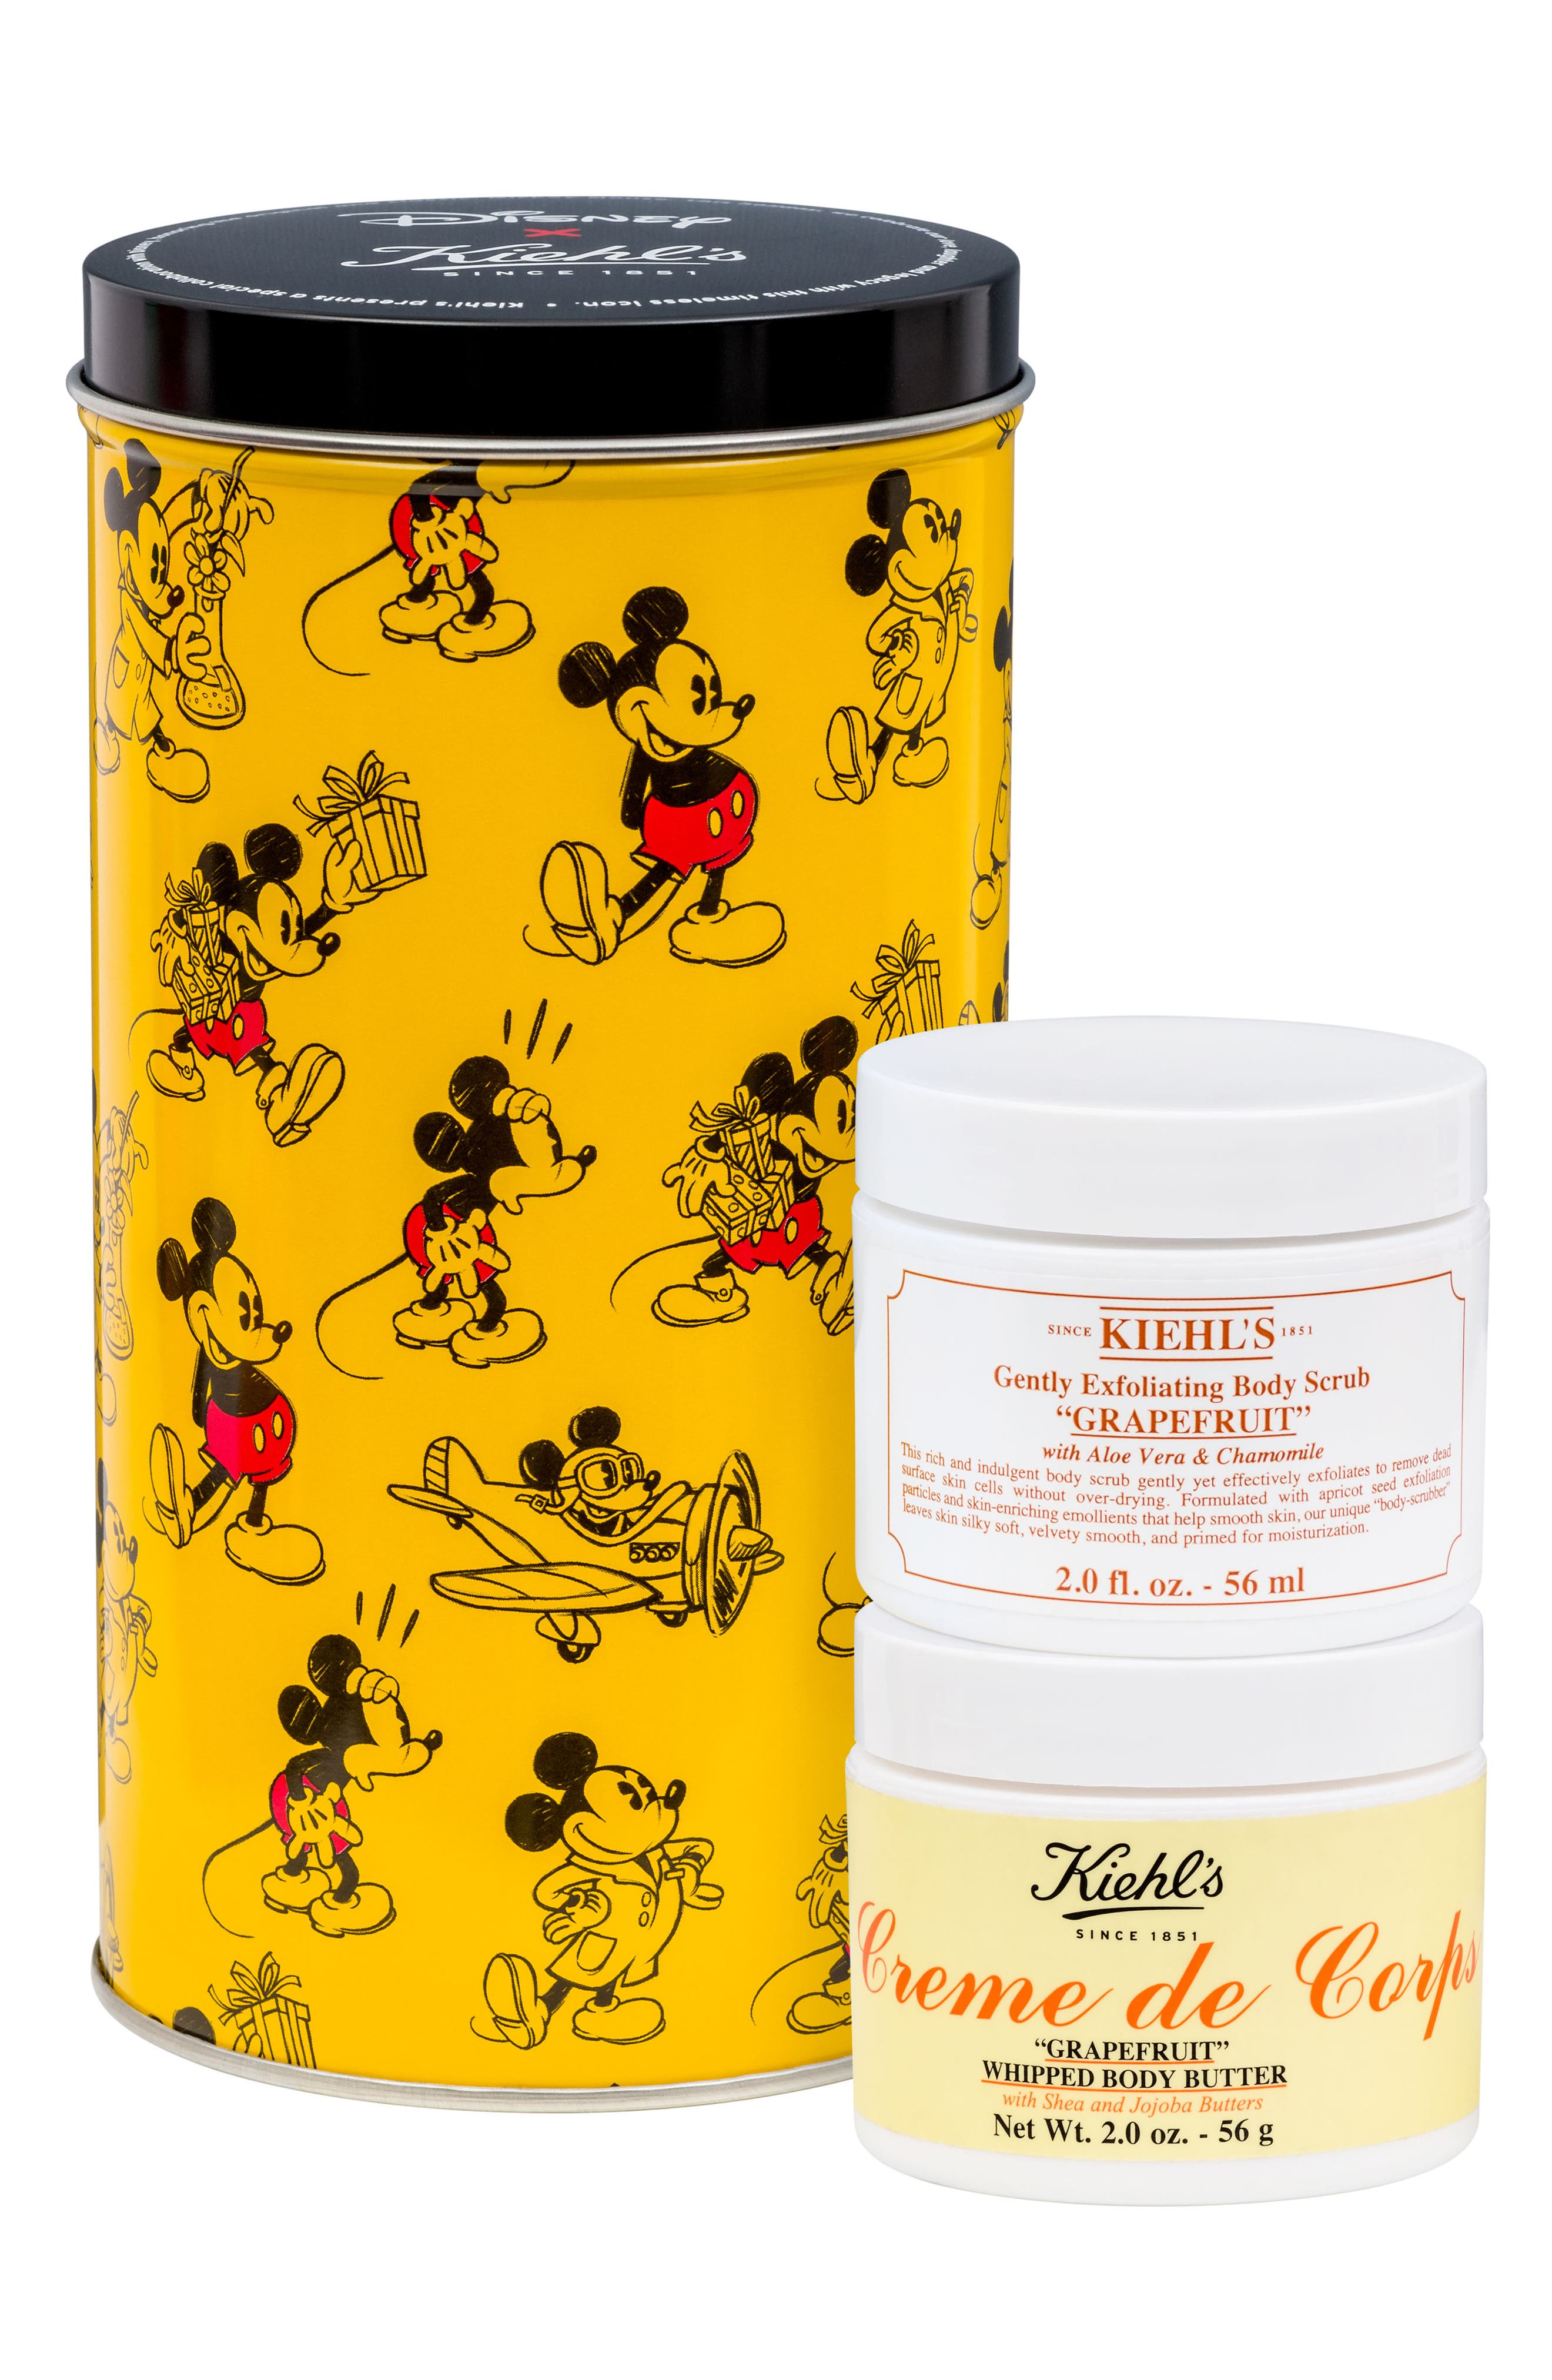 Disney x Kiehl's Since 1851 Grapefruit Body Duo ($27 Value)